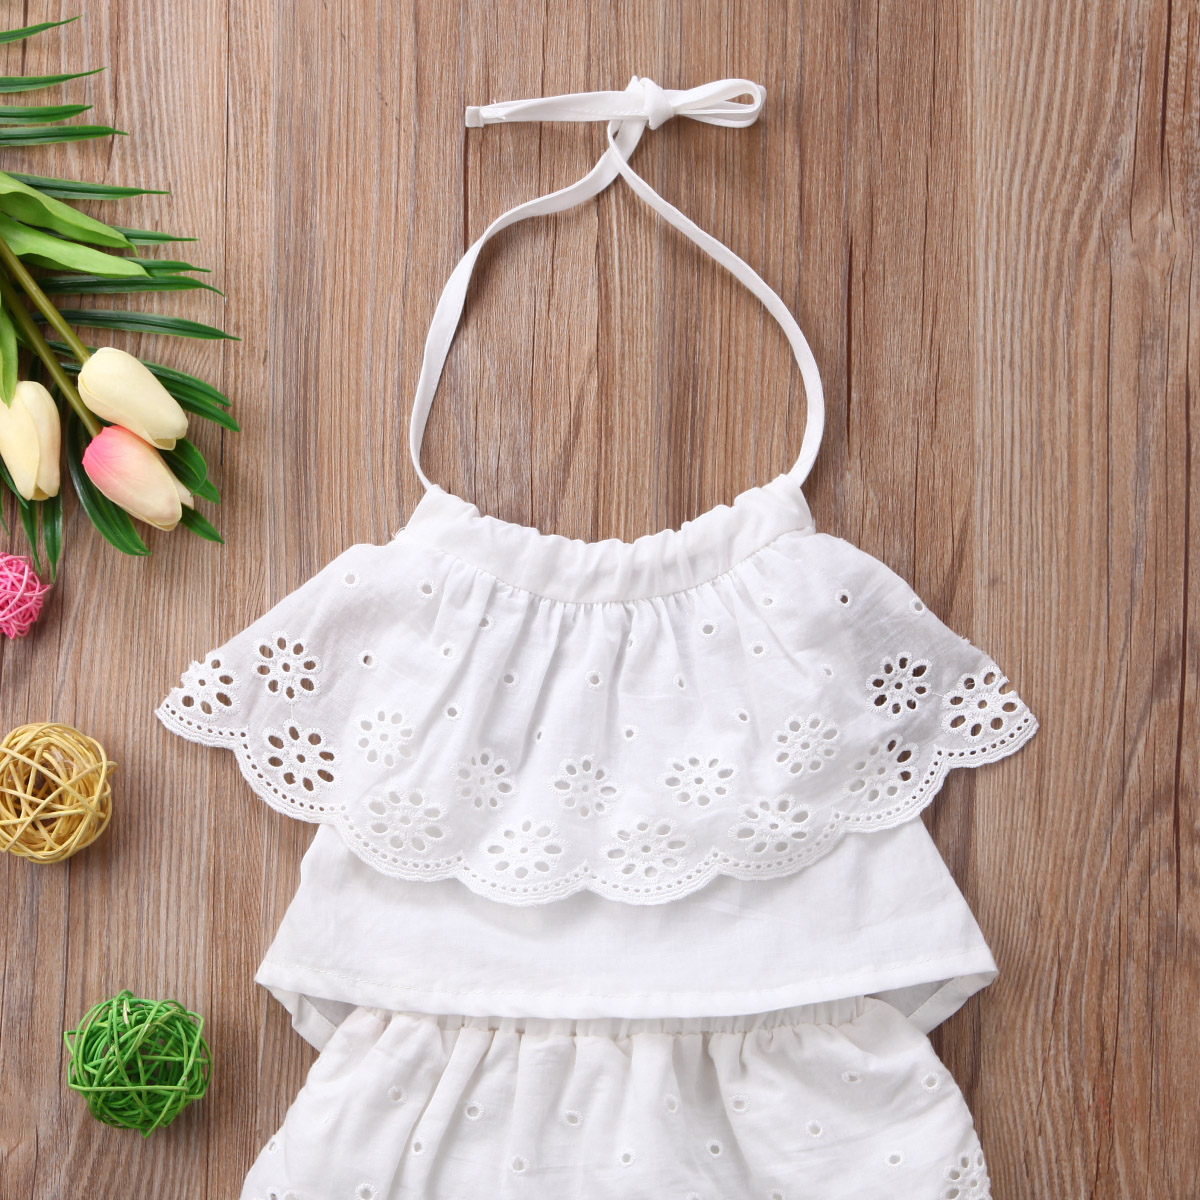 Emmababy Summer 0-24M Infant Clothes Baby Girl Lace Strap Ruffled Sleeveless Tops+Lace Shorts Pants Outfit Set Casual 2pcs